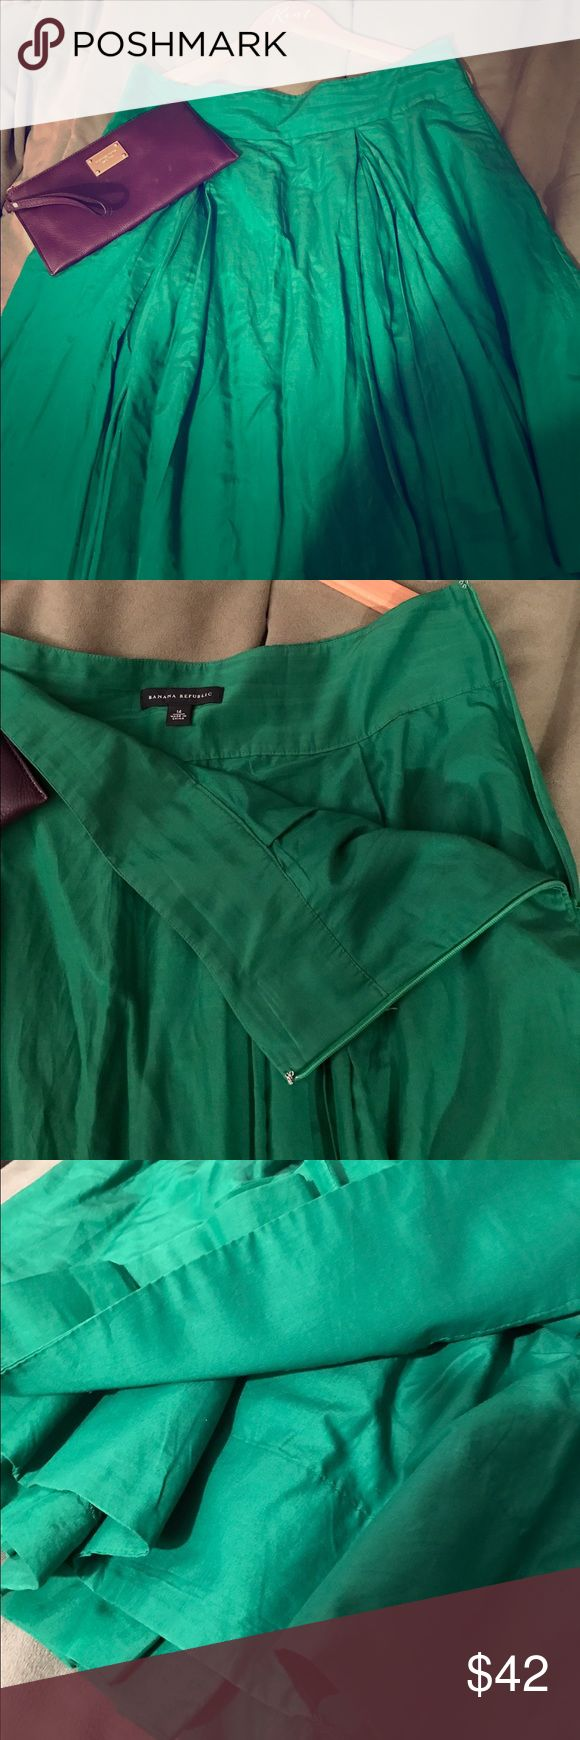 """🌲2XHP! Festive Banana Republic Skirt🌲 Now THIS is festive! EUC!! Stunning green color, pleats on the front and back, double lined, fitted waist (perfect for tucking in your top and maybe adding a belt?!) with side zipper and best of all.... POCKETS! I wore this once for about 2 hours, Xmas party, everyone LOVED it! Looks absolutely perfect with black tights, simple black top, sparkly necklace and black pumps! Could also be worn more casual 😊 25"""" long, 18"""" waist, DCO. This won't last long…"""